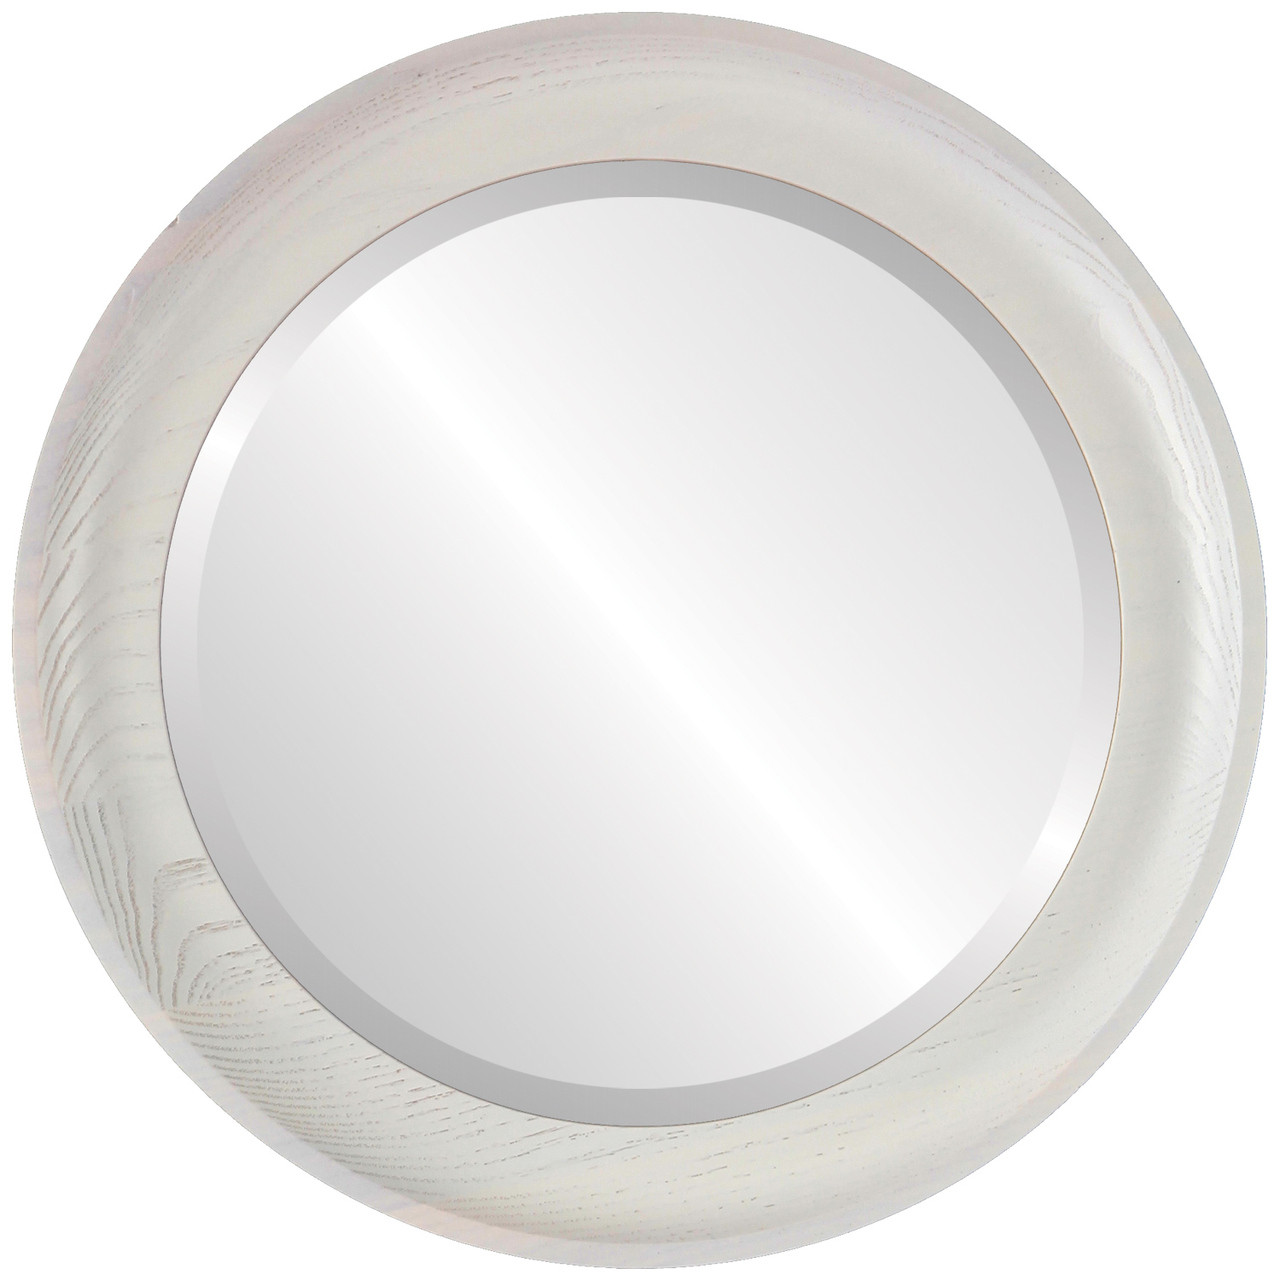 Modern white round mirrors from 118 free shipping for White round wall mirror